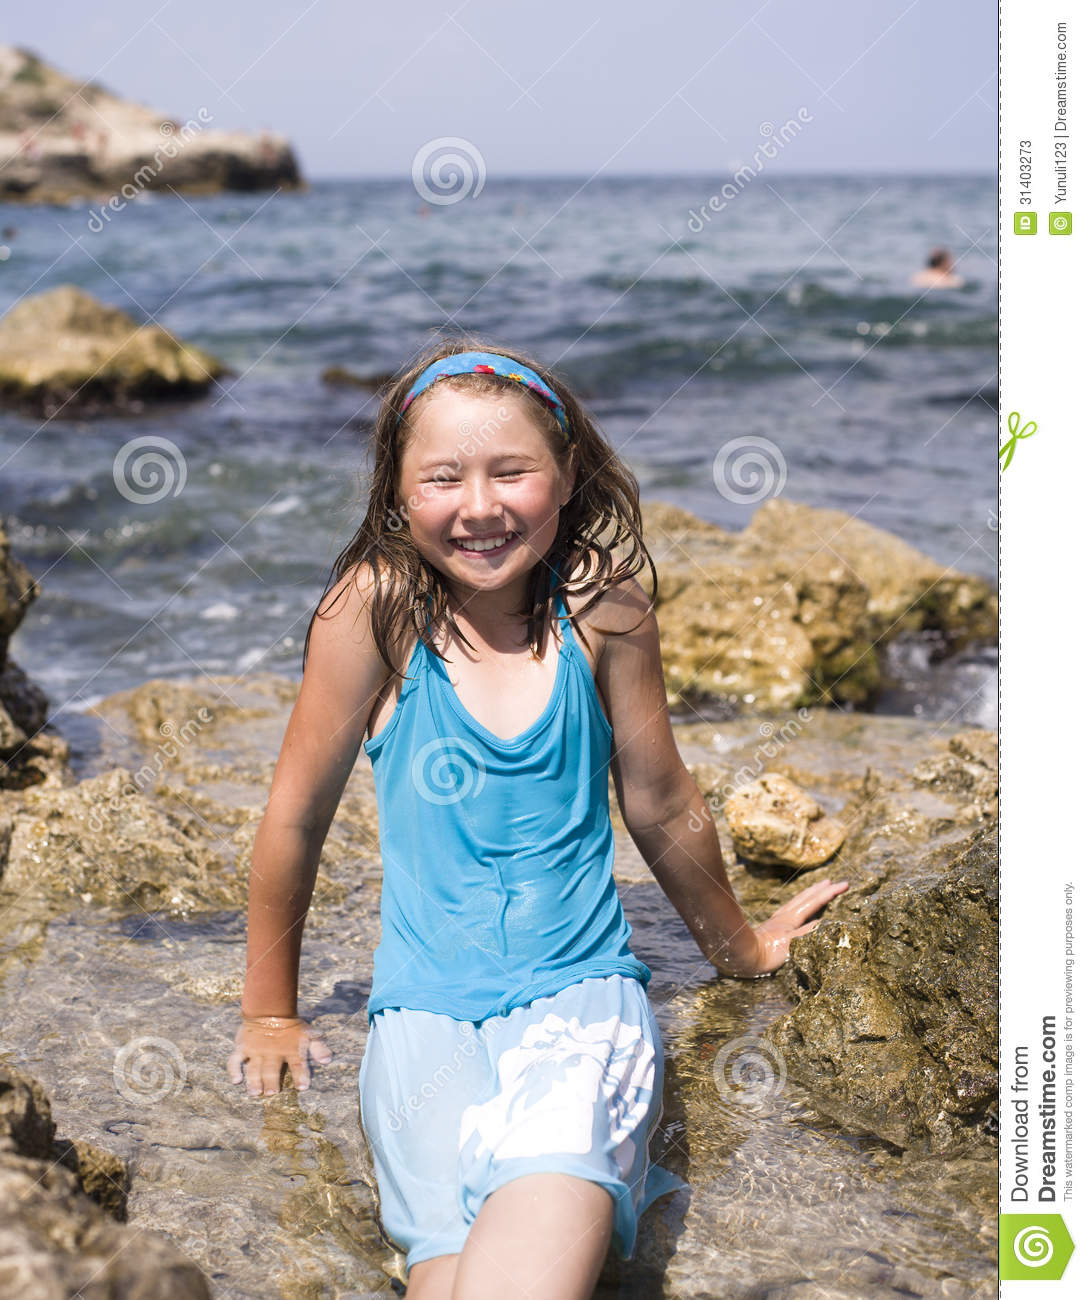 Adorable Happy Smiling Little Girl On Beach Vacation Stock